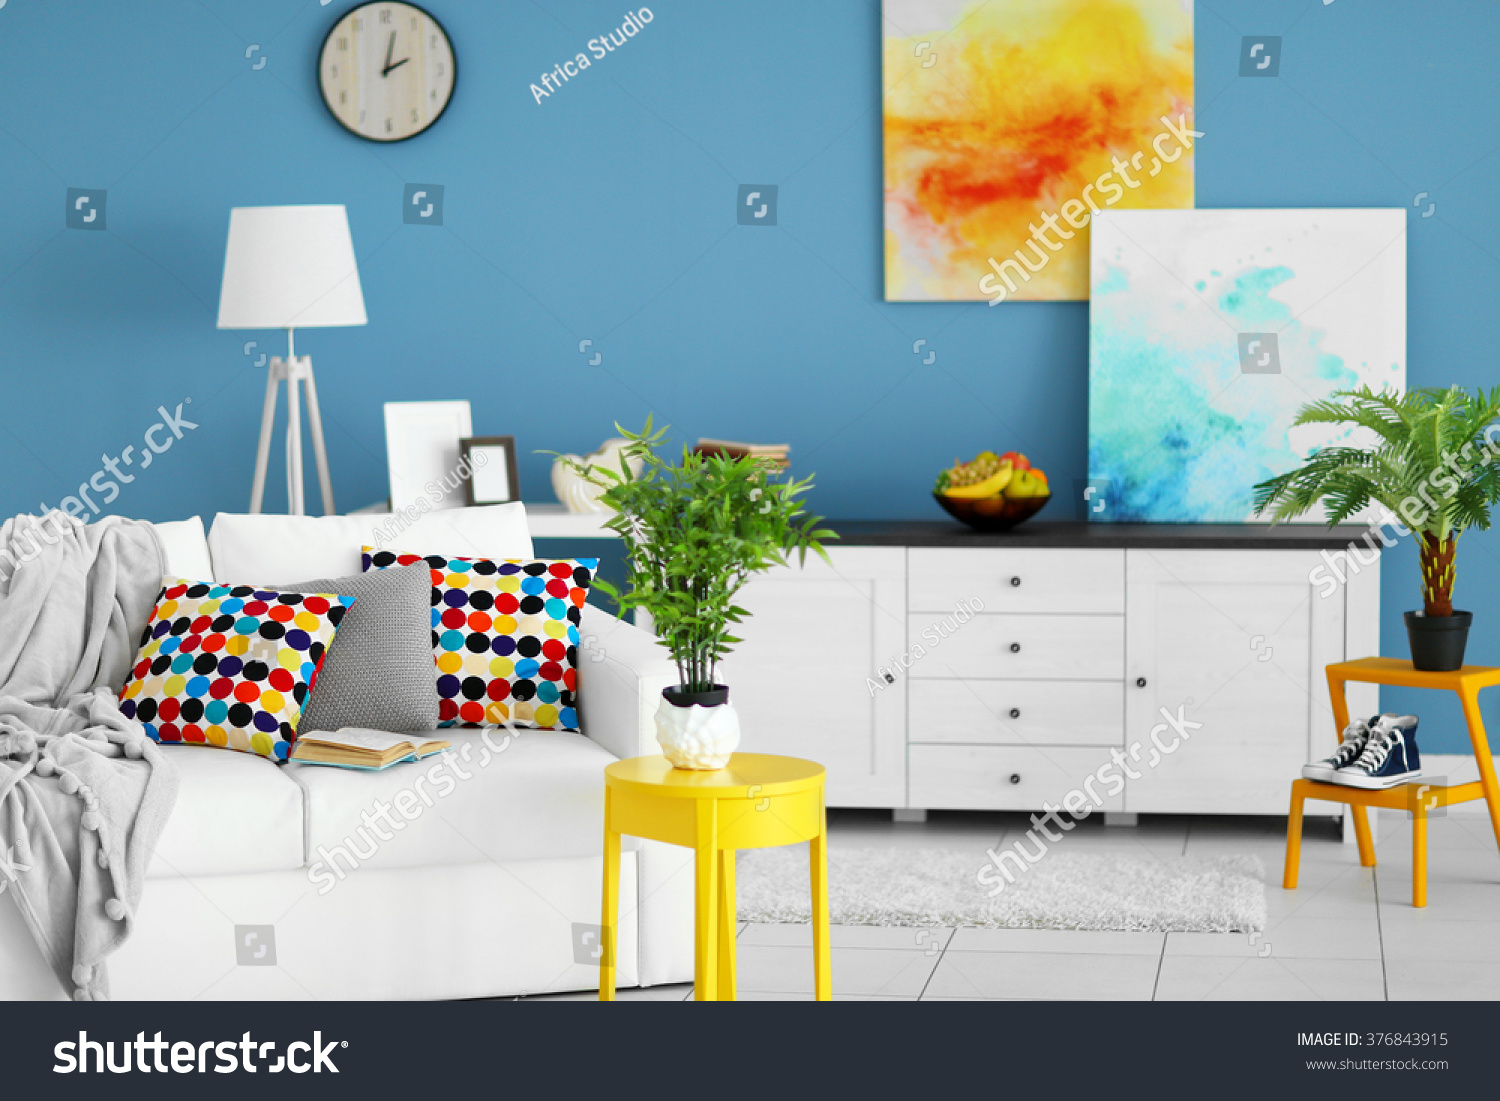 Living Room Interior With White Furniture And Green Plants Pictures On Blue Wall Background